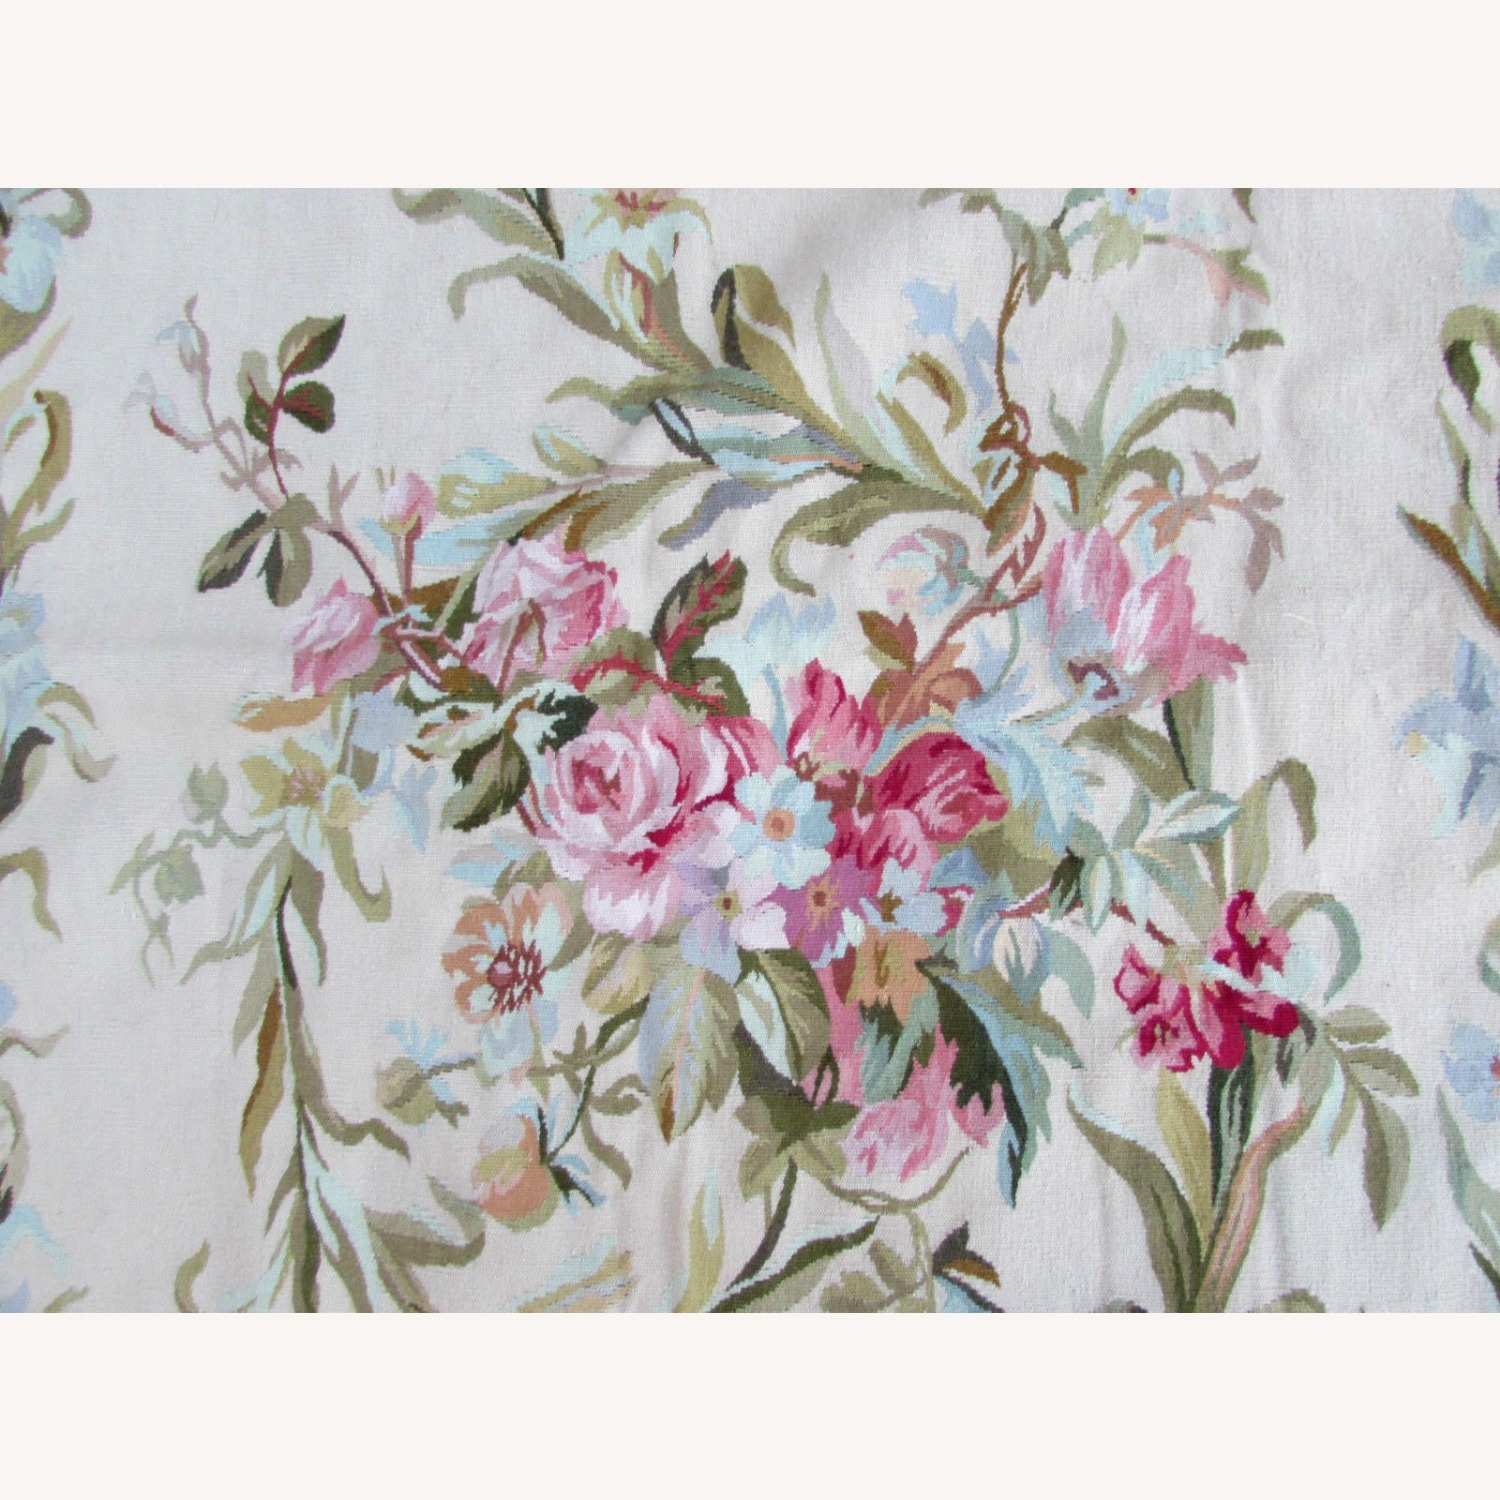 Handmade Vintage French Aubusson Rug - image-3